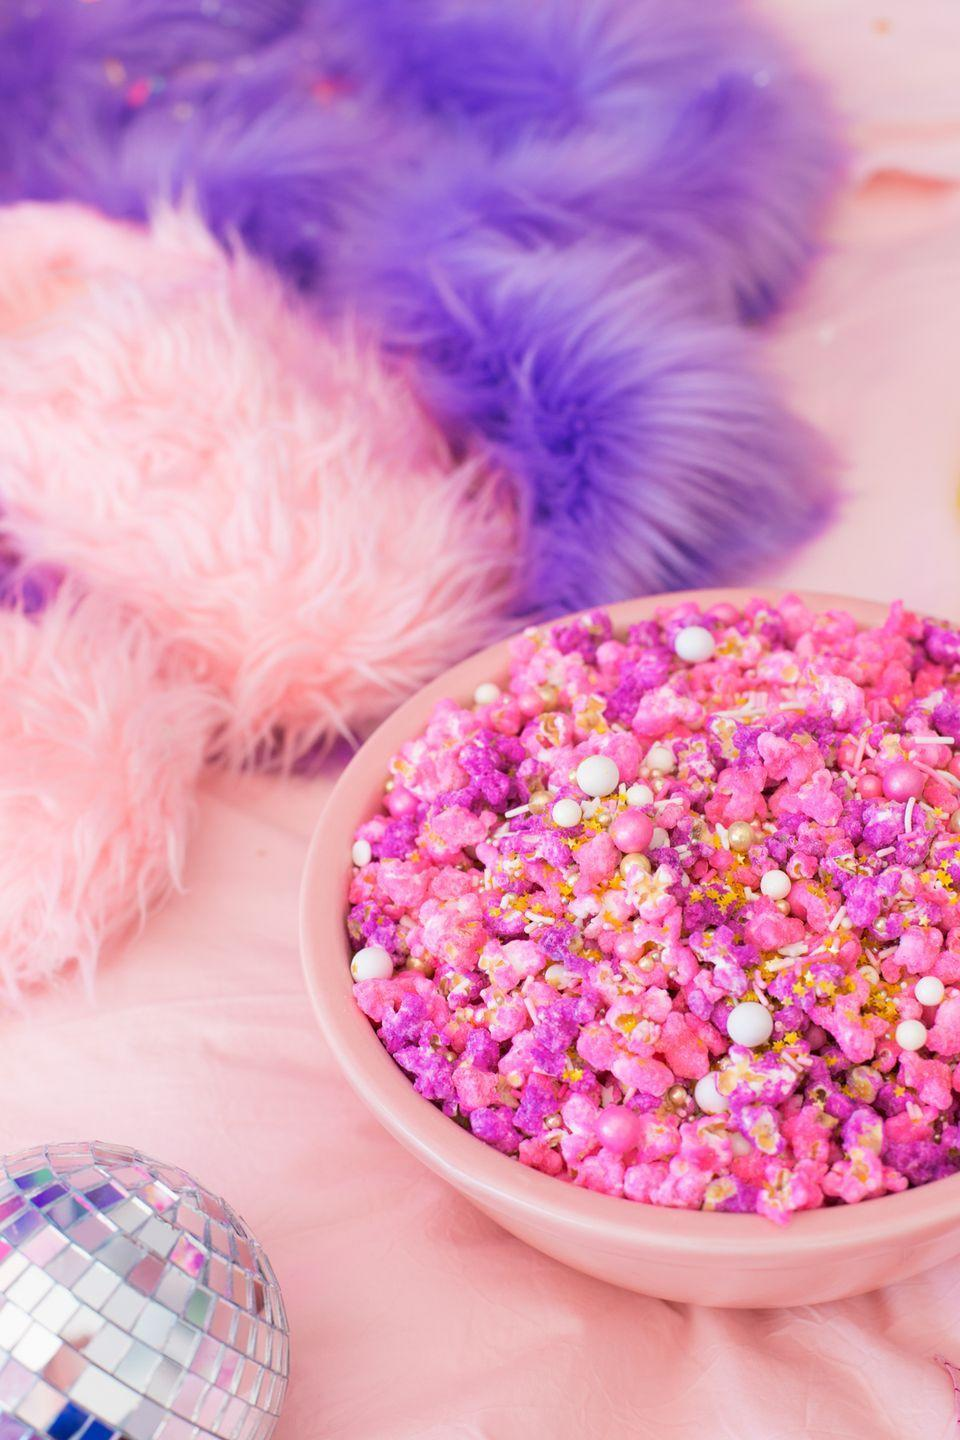 "<p>Throw it back even further to your teen years in the '80s with a <em>Pretty in Pink</em> party. This classic flick will have you and your guests feeling nostalgic in no time. Plus, there are plenty of fun ways to incorporate pink foods. </p><p><strong>Get the recipe from <a href=""https://studiodiy.com/pretty-pink-pastel-candied-popcorn/"" rel=""nofollow noopener"" target=""_blank"" data-ylk=""slk:Studio DIY!"" class=""link rapid-noclick-resp"">Studio DIY!</a>.</strong></p><p><a class=""link rapid-noclick-resp"" href=""https://go.redirectingat.com?id=74968X1596630&url=https%3A%2F%2Fwww.walmart.com%2Fip%2FSTARBURST-All-Pink-Fruit-Chews-Candy-50-Ounce-Party-Size-Resealable-Bag%2F521090764&sref=https%3A%2F%2Fwww.thepioneerwoman.com%2Fhome-lifestyle%2Fentertaining%2Fg34192298%2F50th-birthday-party-ideas%2F"" rel=""nofollow noopener"" target=""_blank"" data-ylk=""slk:SHOP ALL-PINK STARBURSTS"">SHOP ALL-PINK STARBURSTS</a></p>"